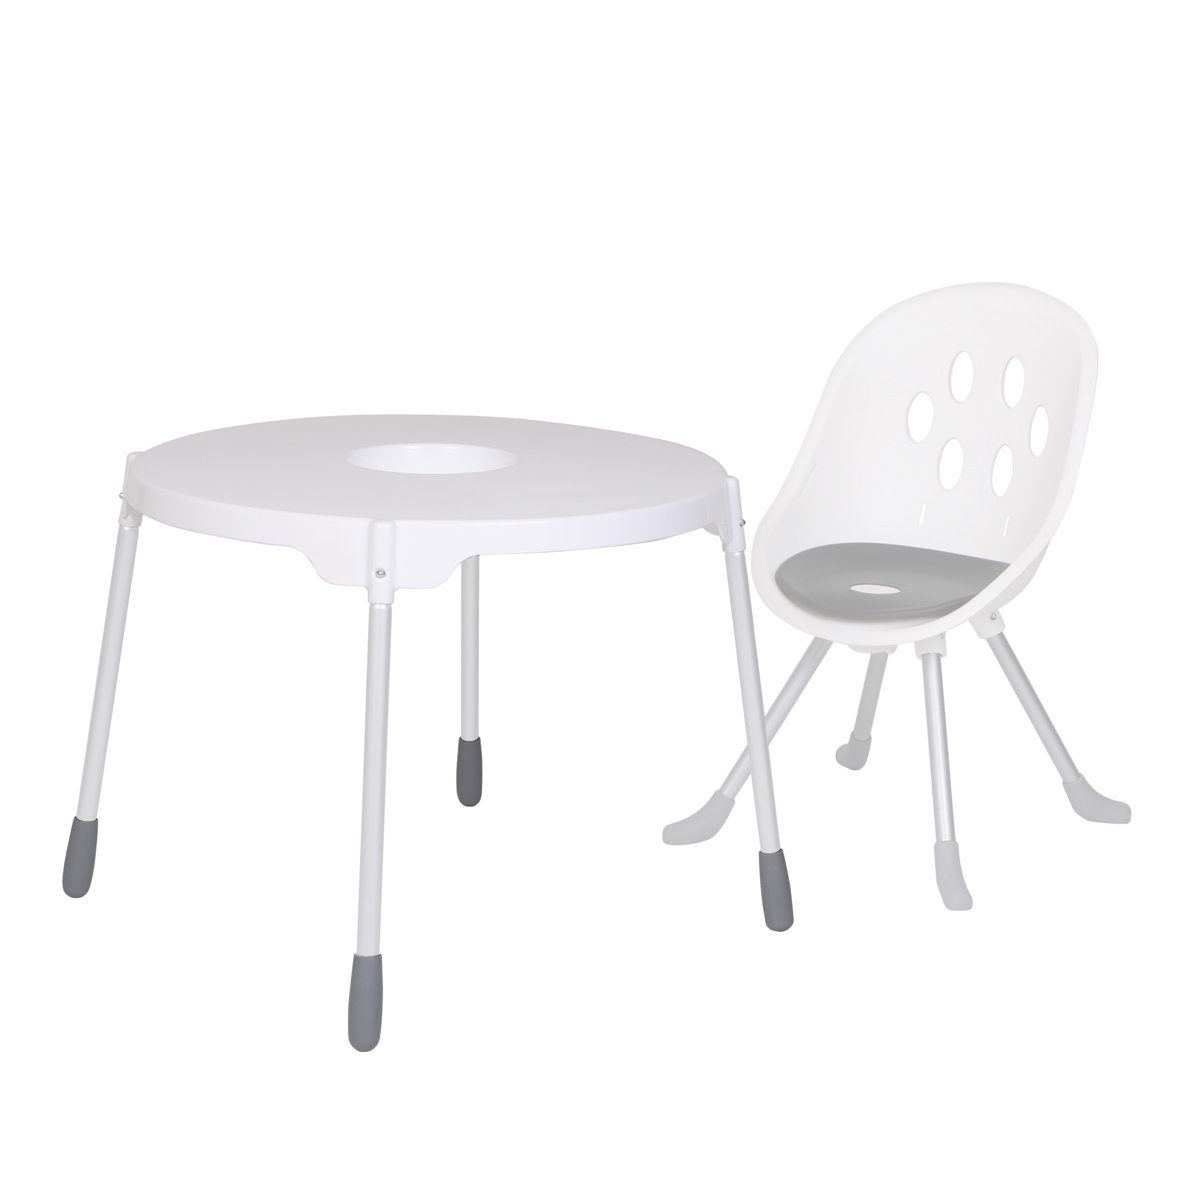 https://cdn.accentuate.io/4711297319017/19119322628201/phil_and_teds_poppy_table_top_with_leg_set_and_poppy_high_chair_1-v1630977923178.jpg?1200x1200